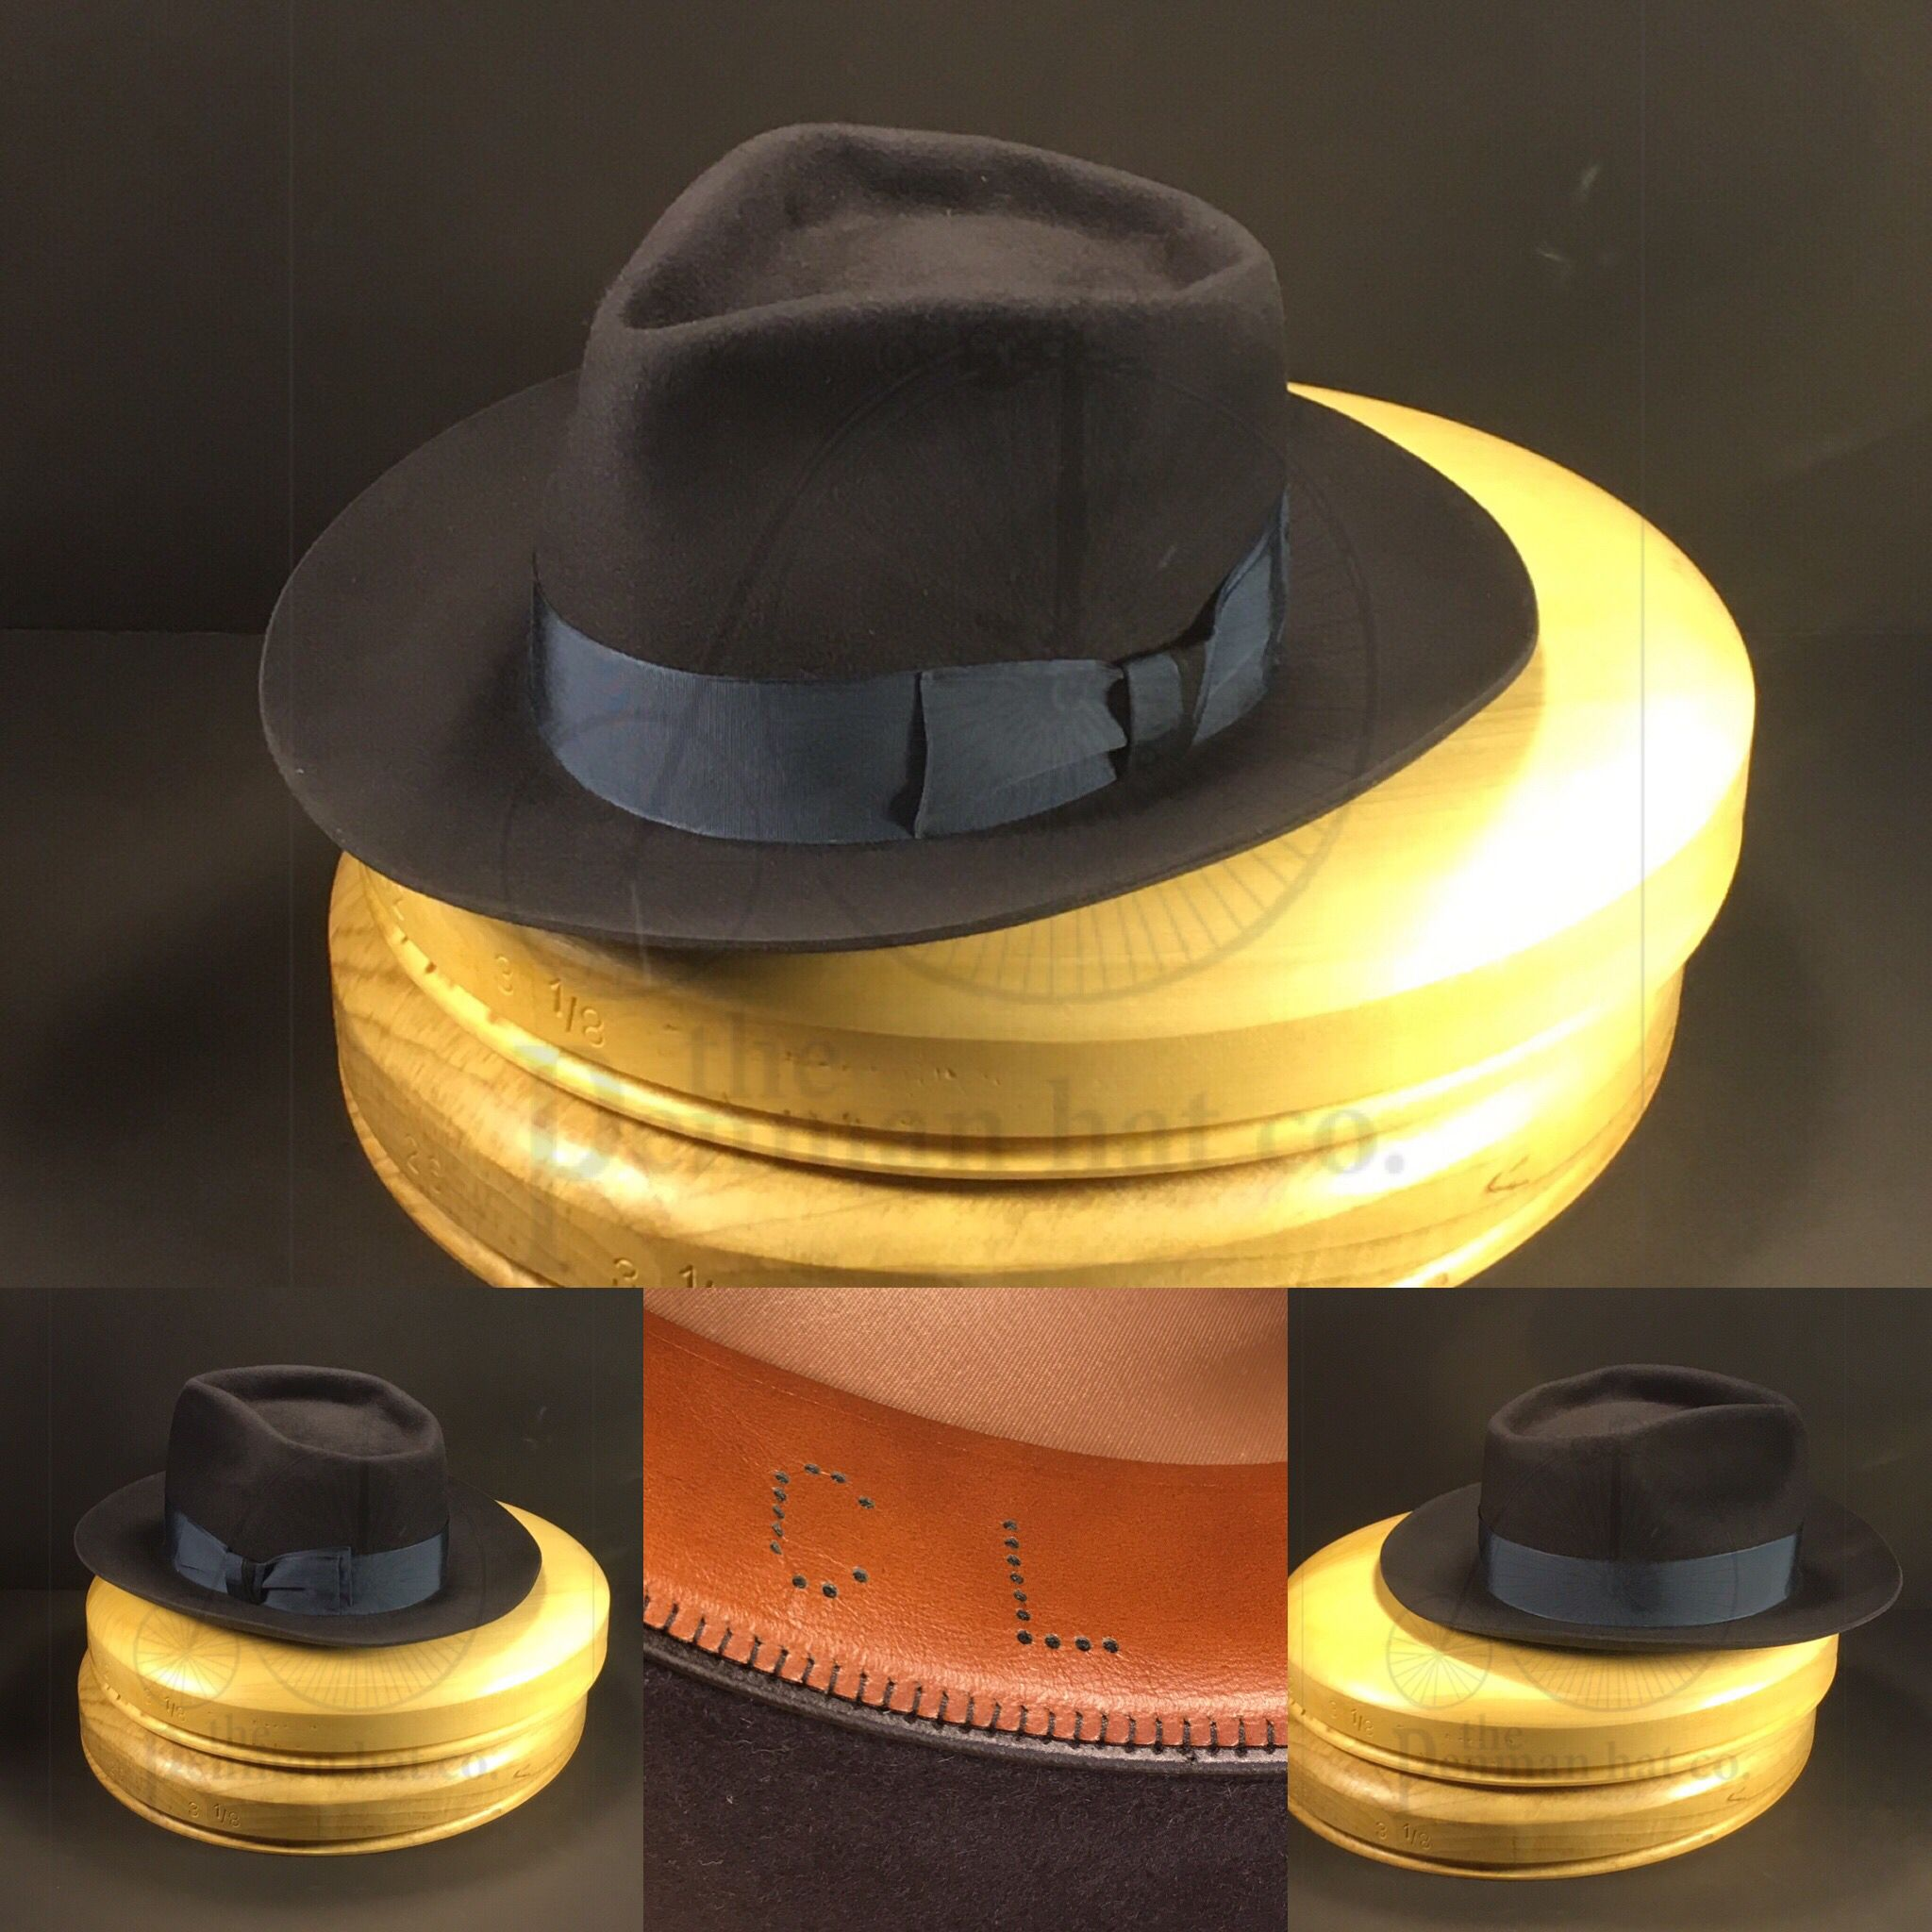 56499d14467c8 Just finished this for the lovely and talented  caitylotz How do you think  she will look in this 6 point diamond creased fedora   OnlyPenman   penmanhats ...